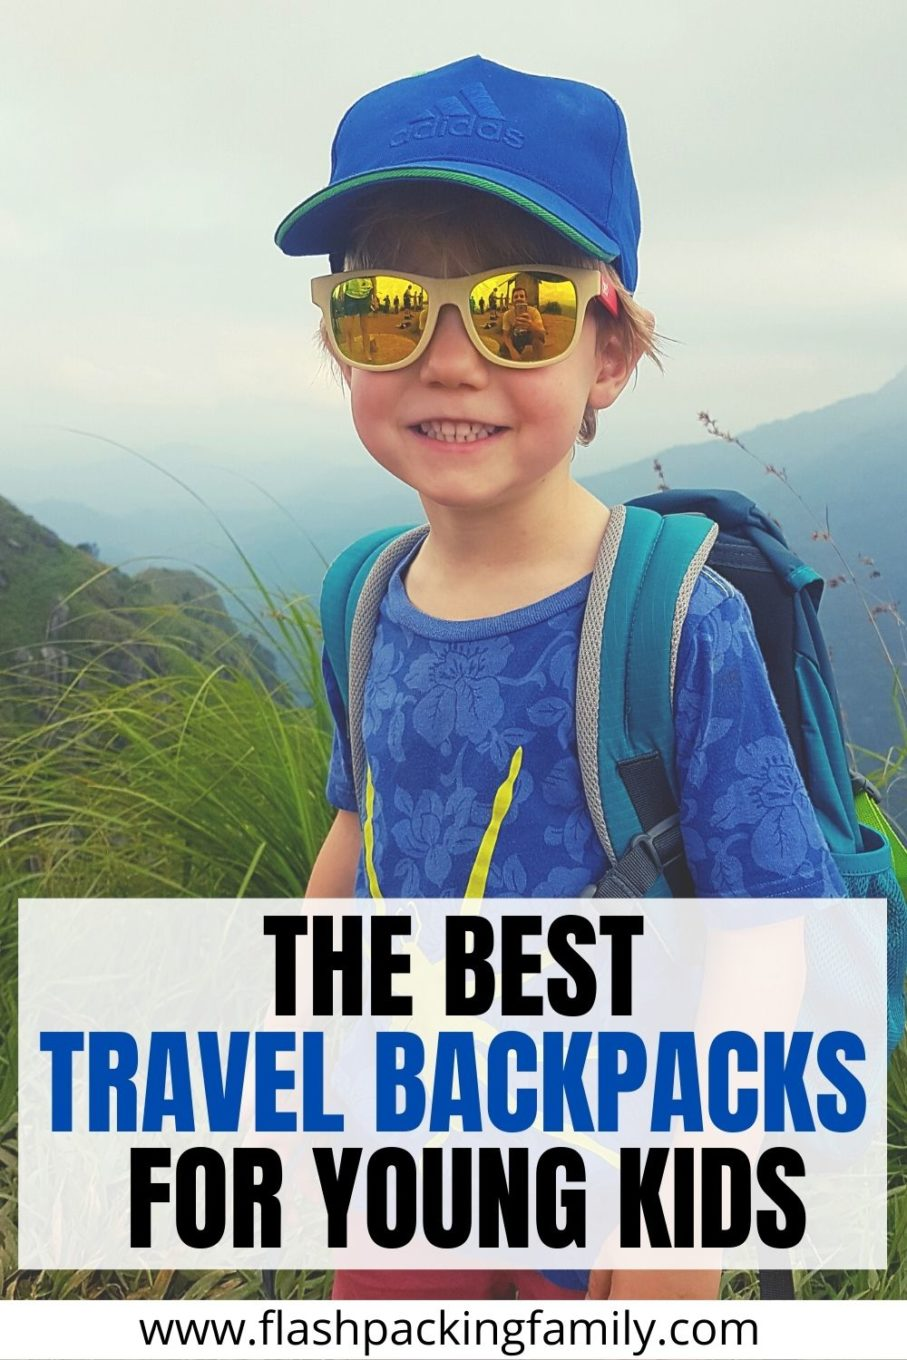 The Best Travel Backpacks For Young Kids